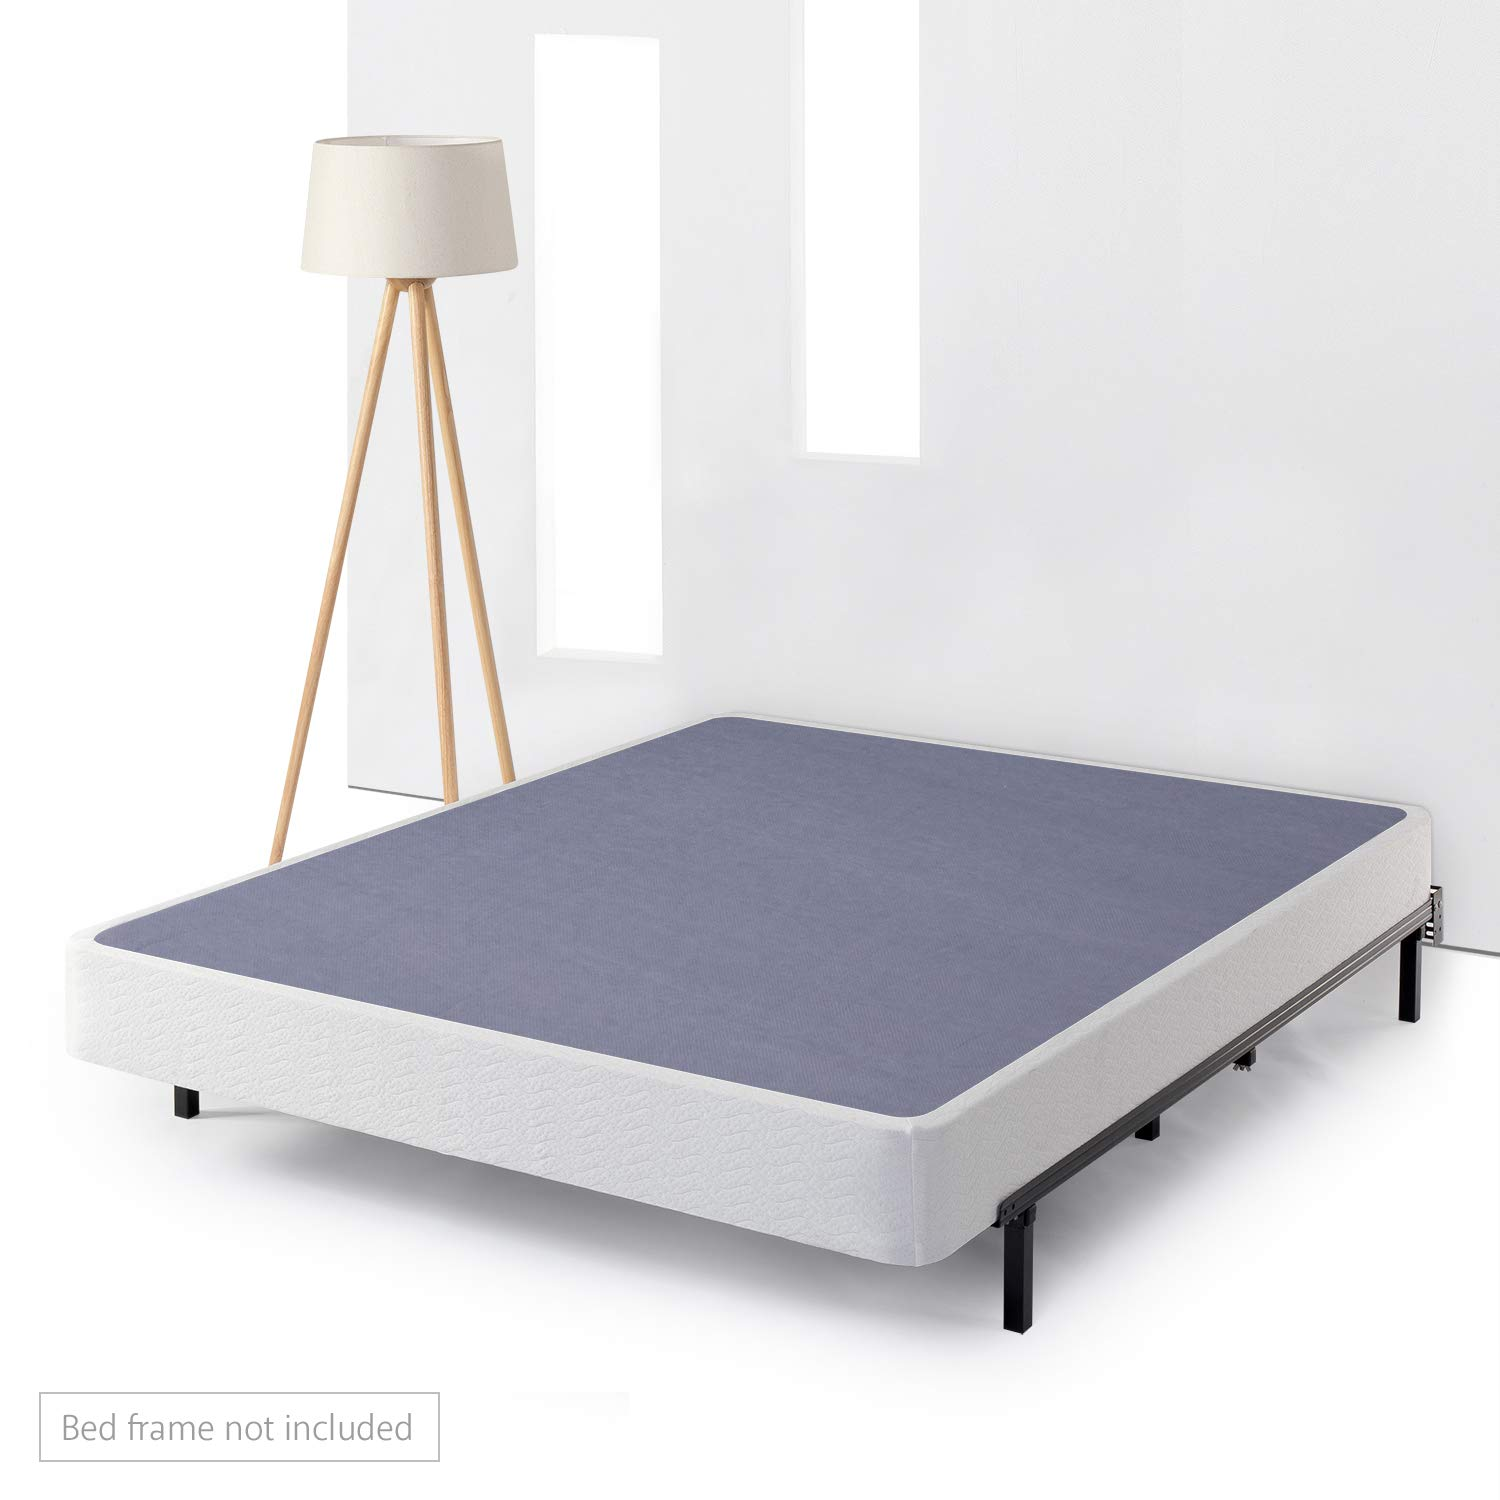 Best Price Mattress Heavy Duty Steel Low Profile Box Spring/Mattress Foundation/Easy Assembly - 7 Inch, Twin, Navy/White by Best Price Mattress